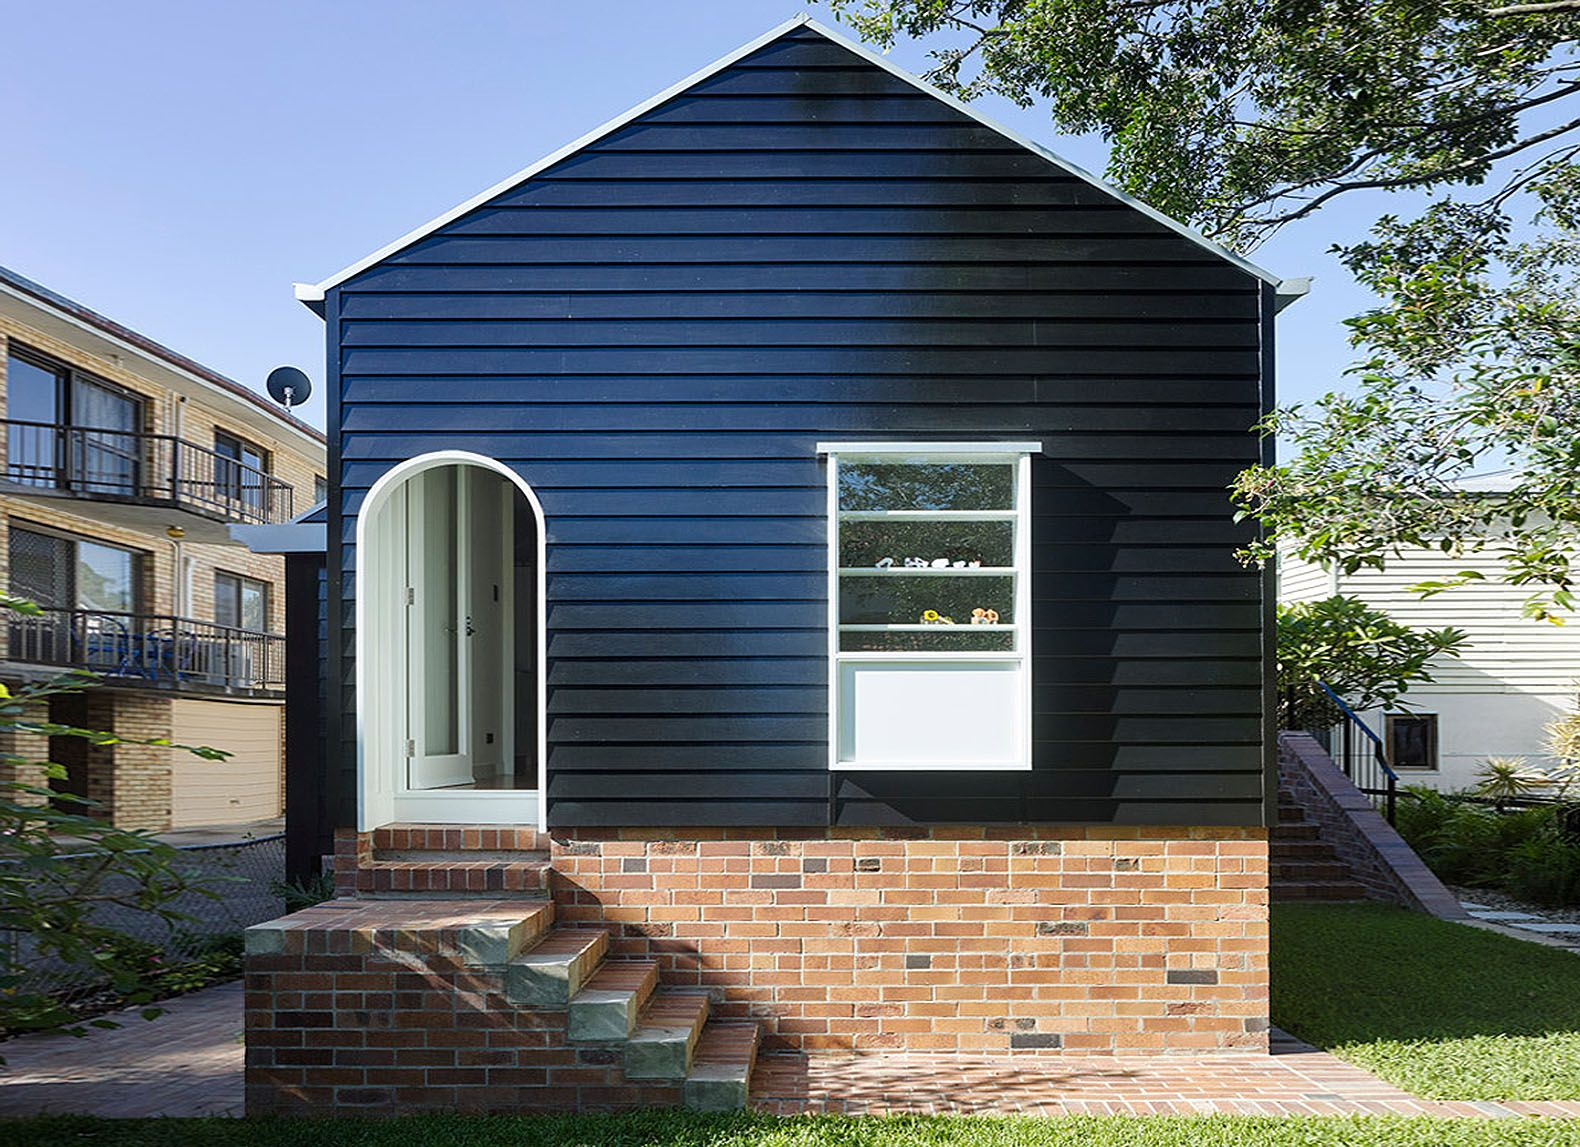 Pre-war Queensland bungalow gets a modern makeover and a cottage-like extension